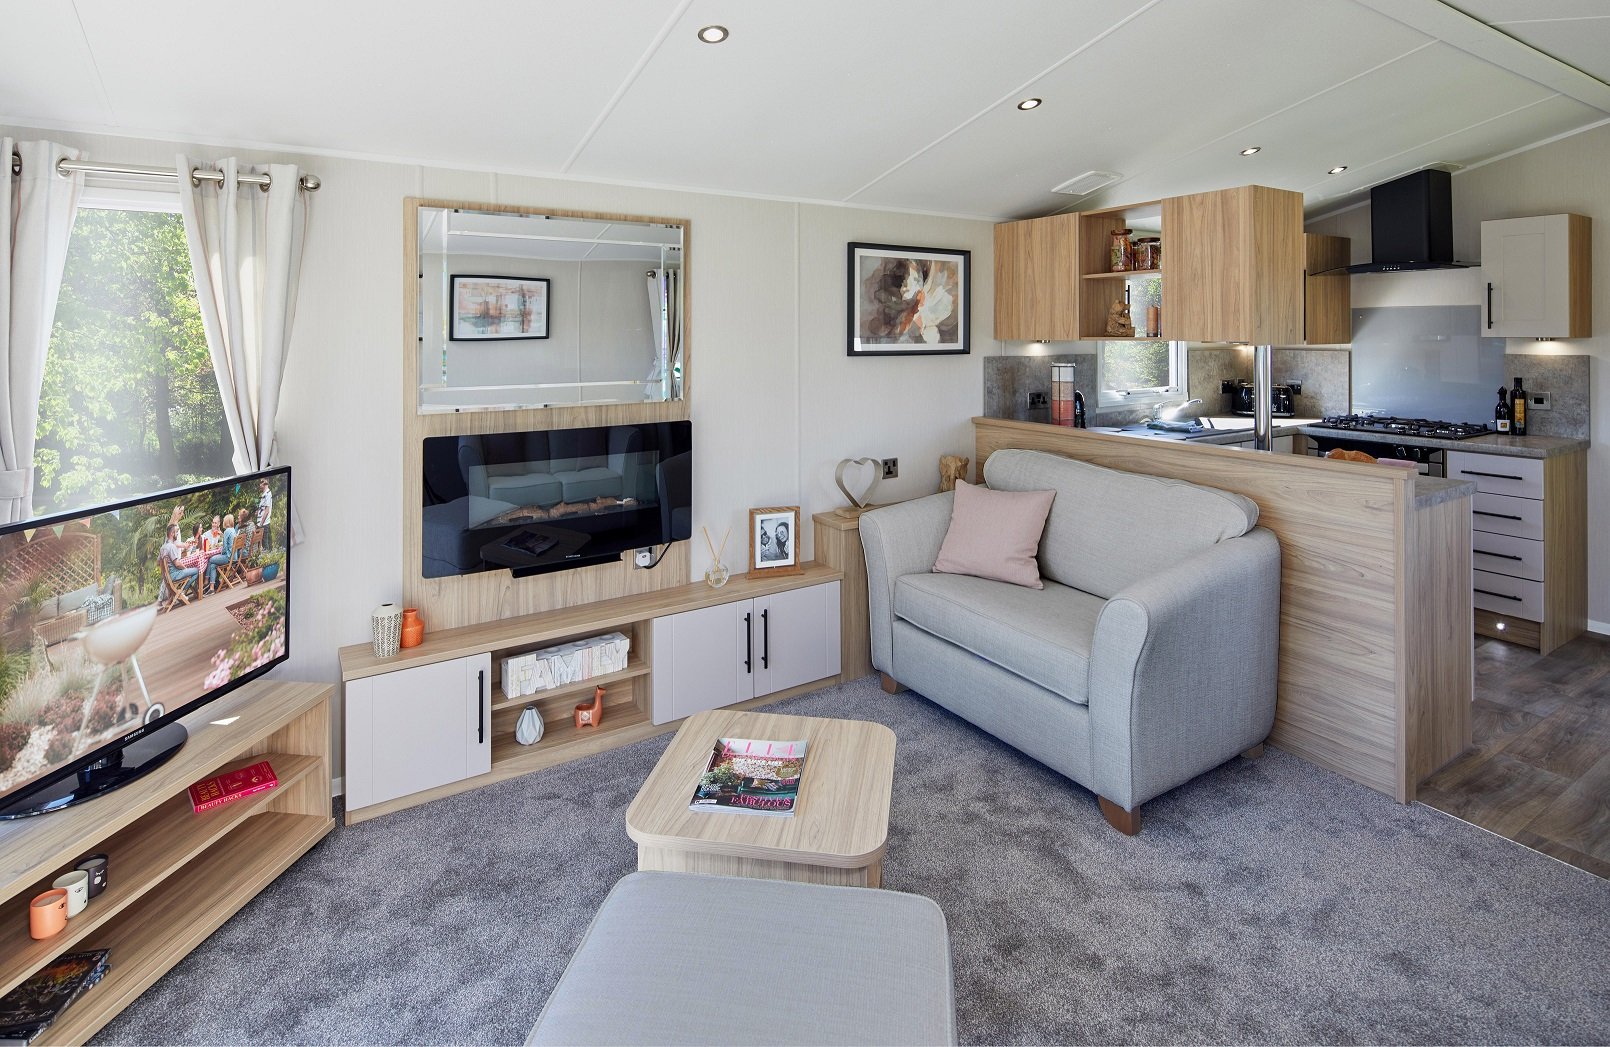 Willerby Manor: New Static Caravans and Holiday Homes for Sale, On Order Image 1